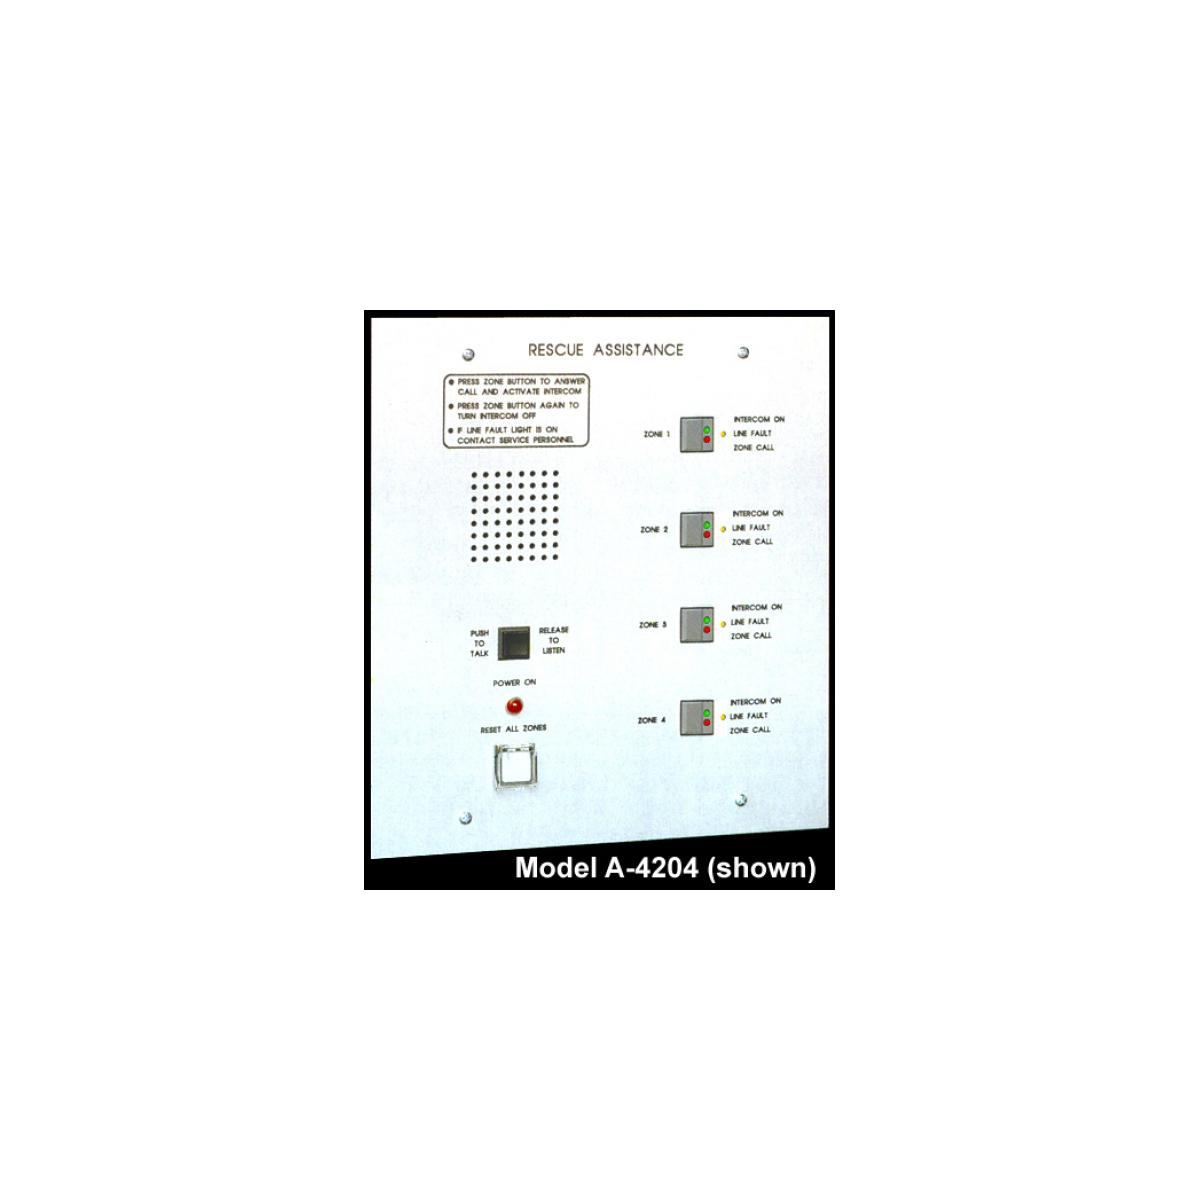 residential wiring diagram downloads with A 4224 on Isinmafohi soclog likewise Eberle Thermostat Wiring Diagram moreover Typical Wiring Diagramzone Controller moreover Ac Motor Wiring Diagram likewise Gas Boiler Manuals.